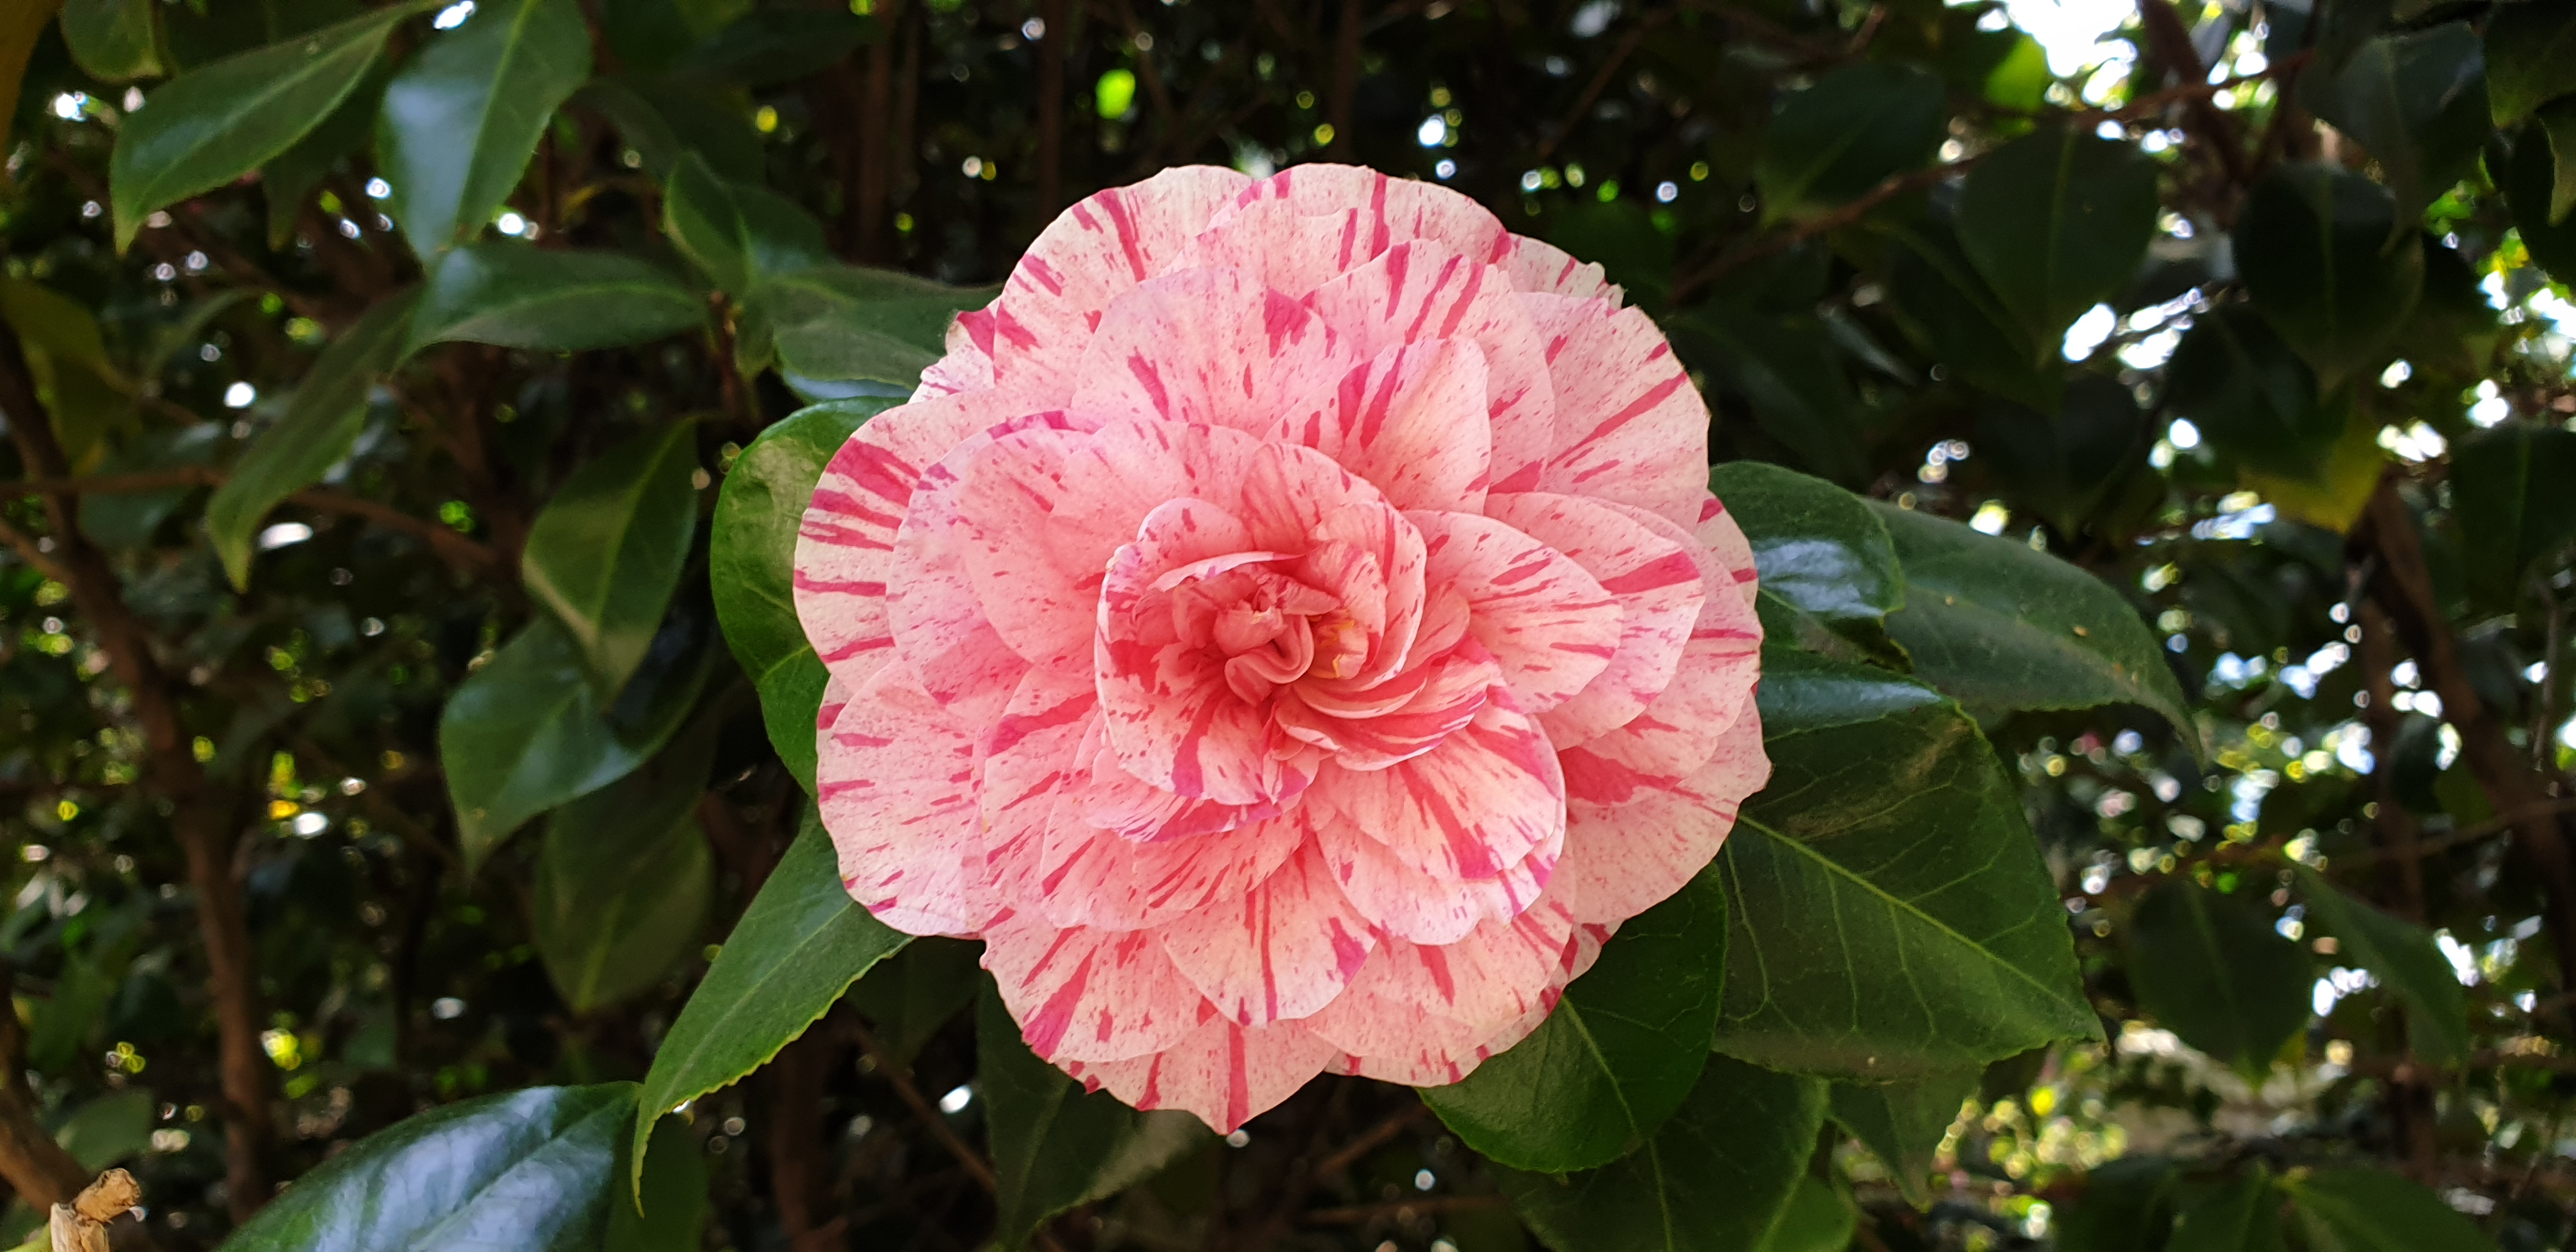 A speckled camellia